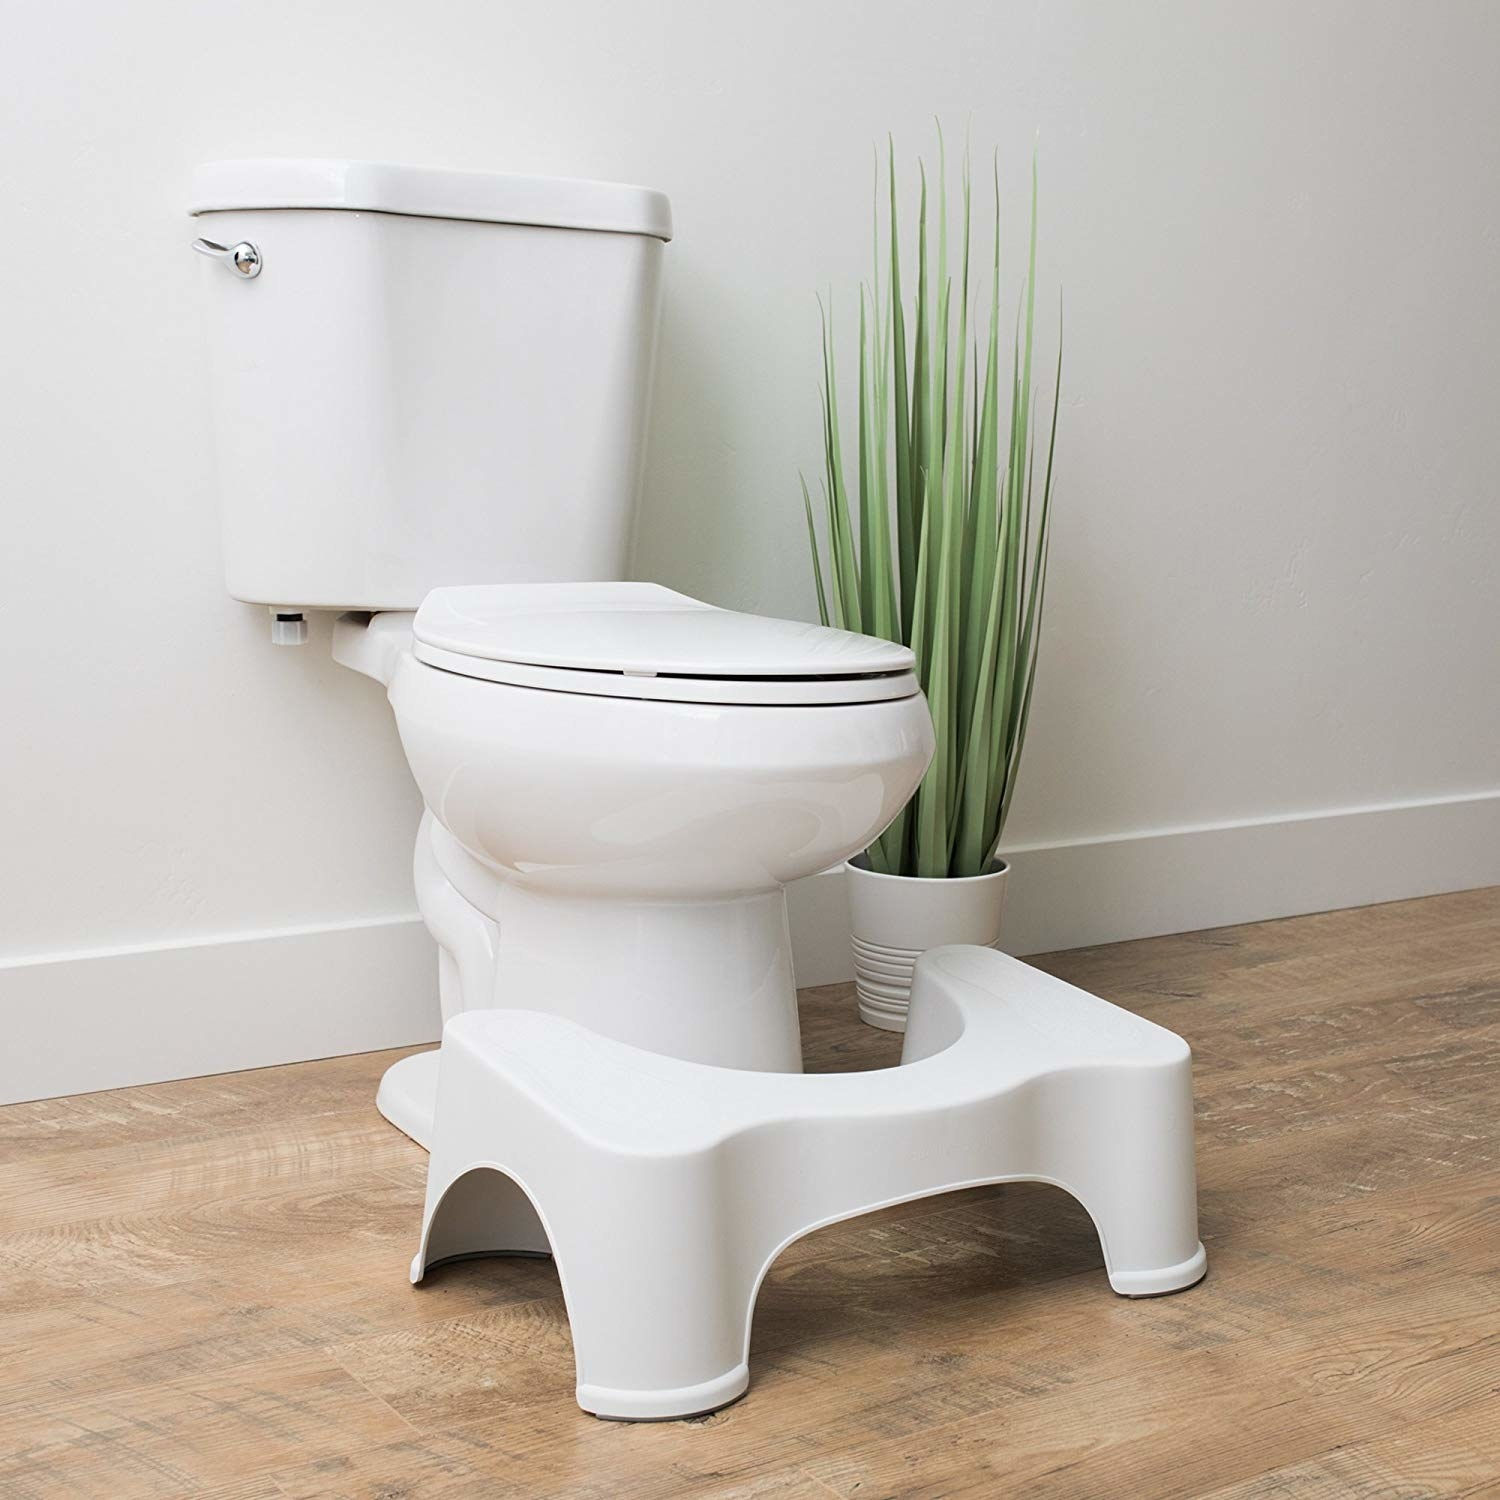 the white Squatty potty